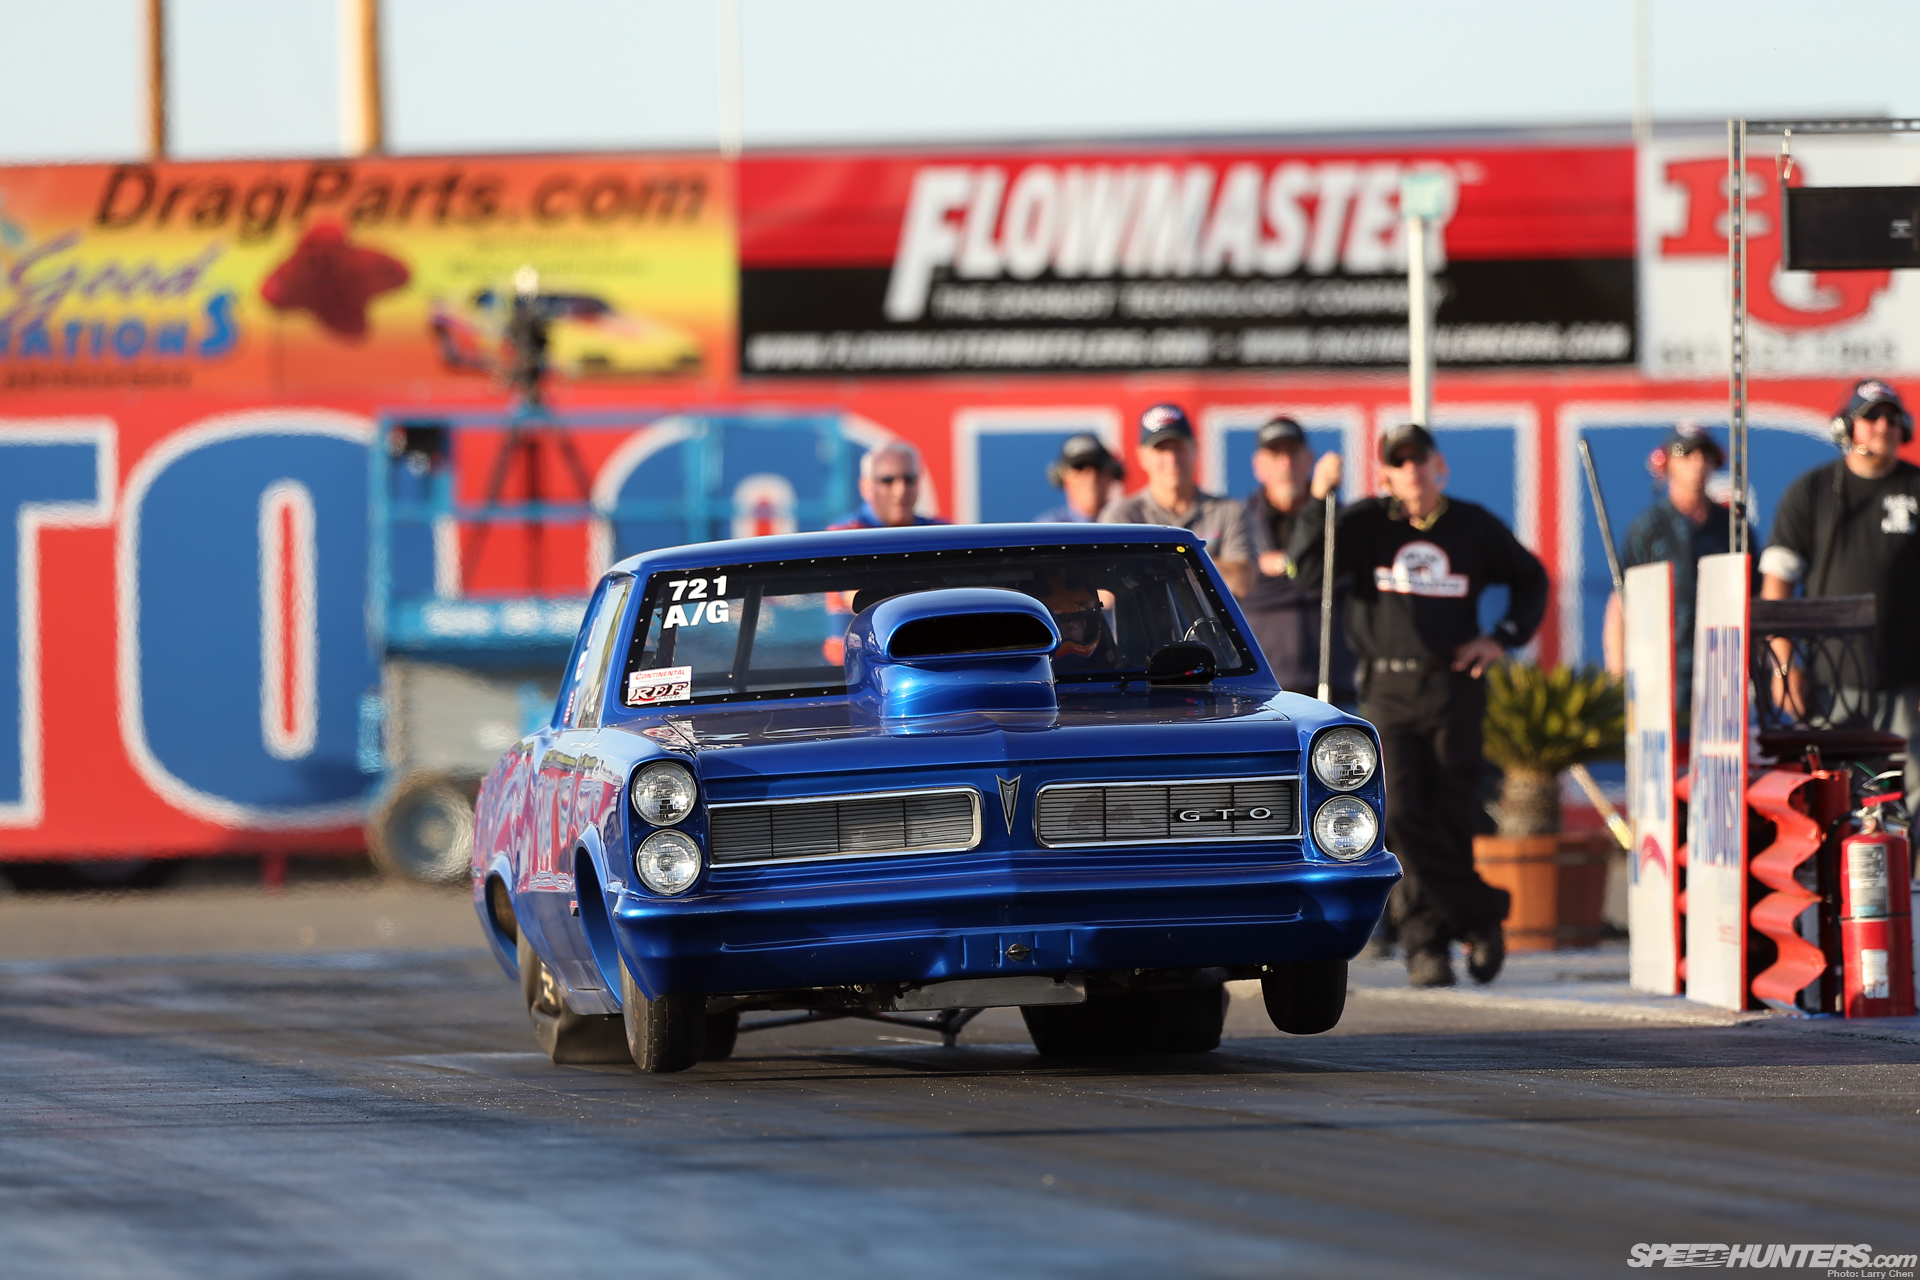 Drag Race Car Wheelie Launch Strip Track Pontian Gto Hot Rod Muscle Wallpaper 1920x1280 52066 Wallpaperup